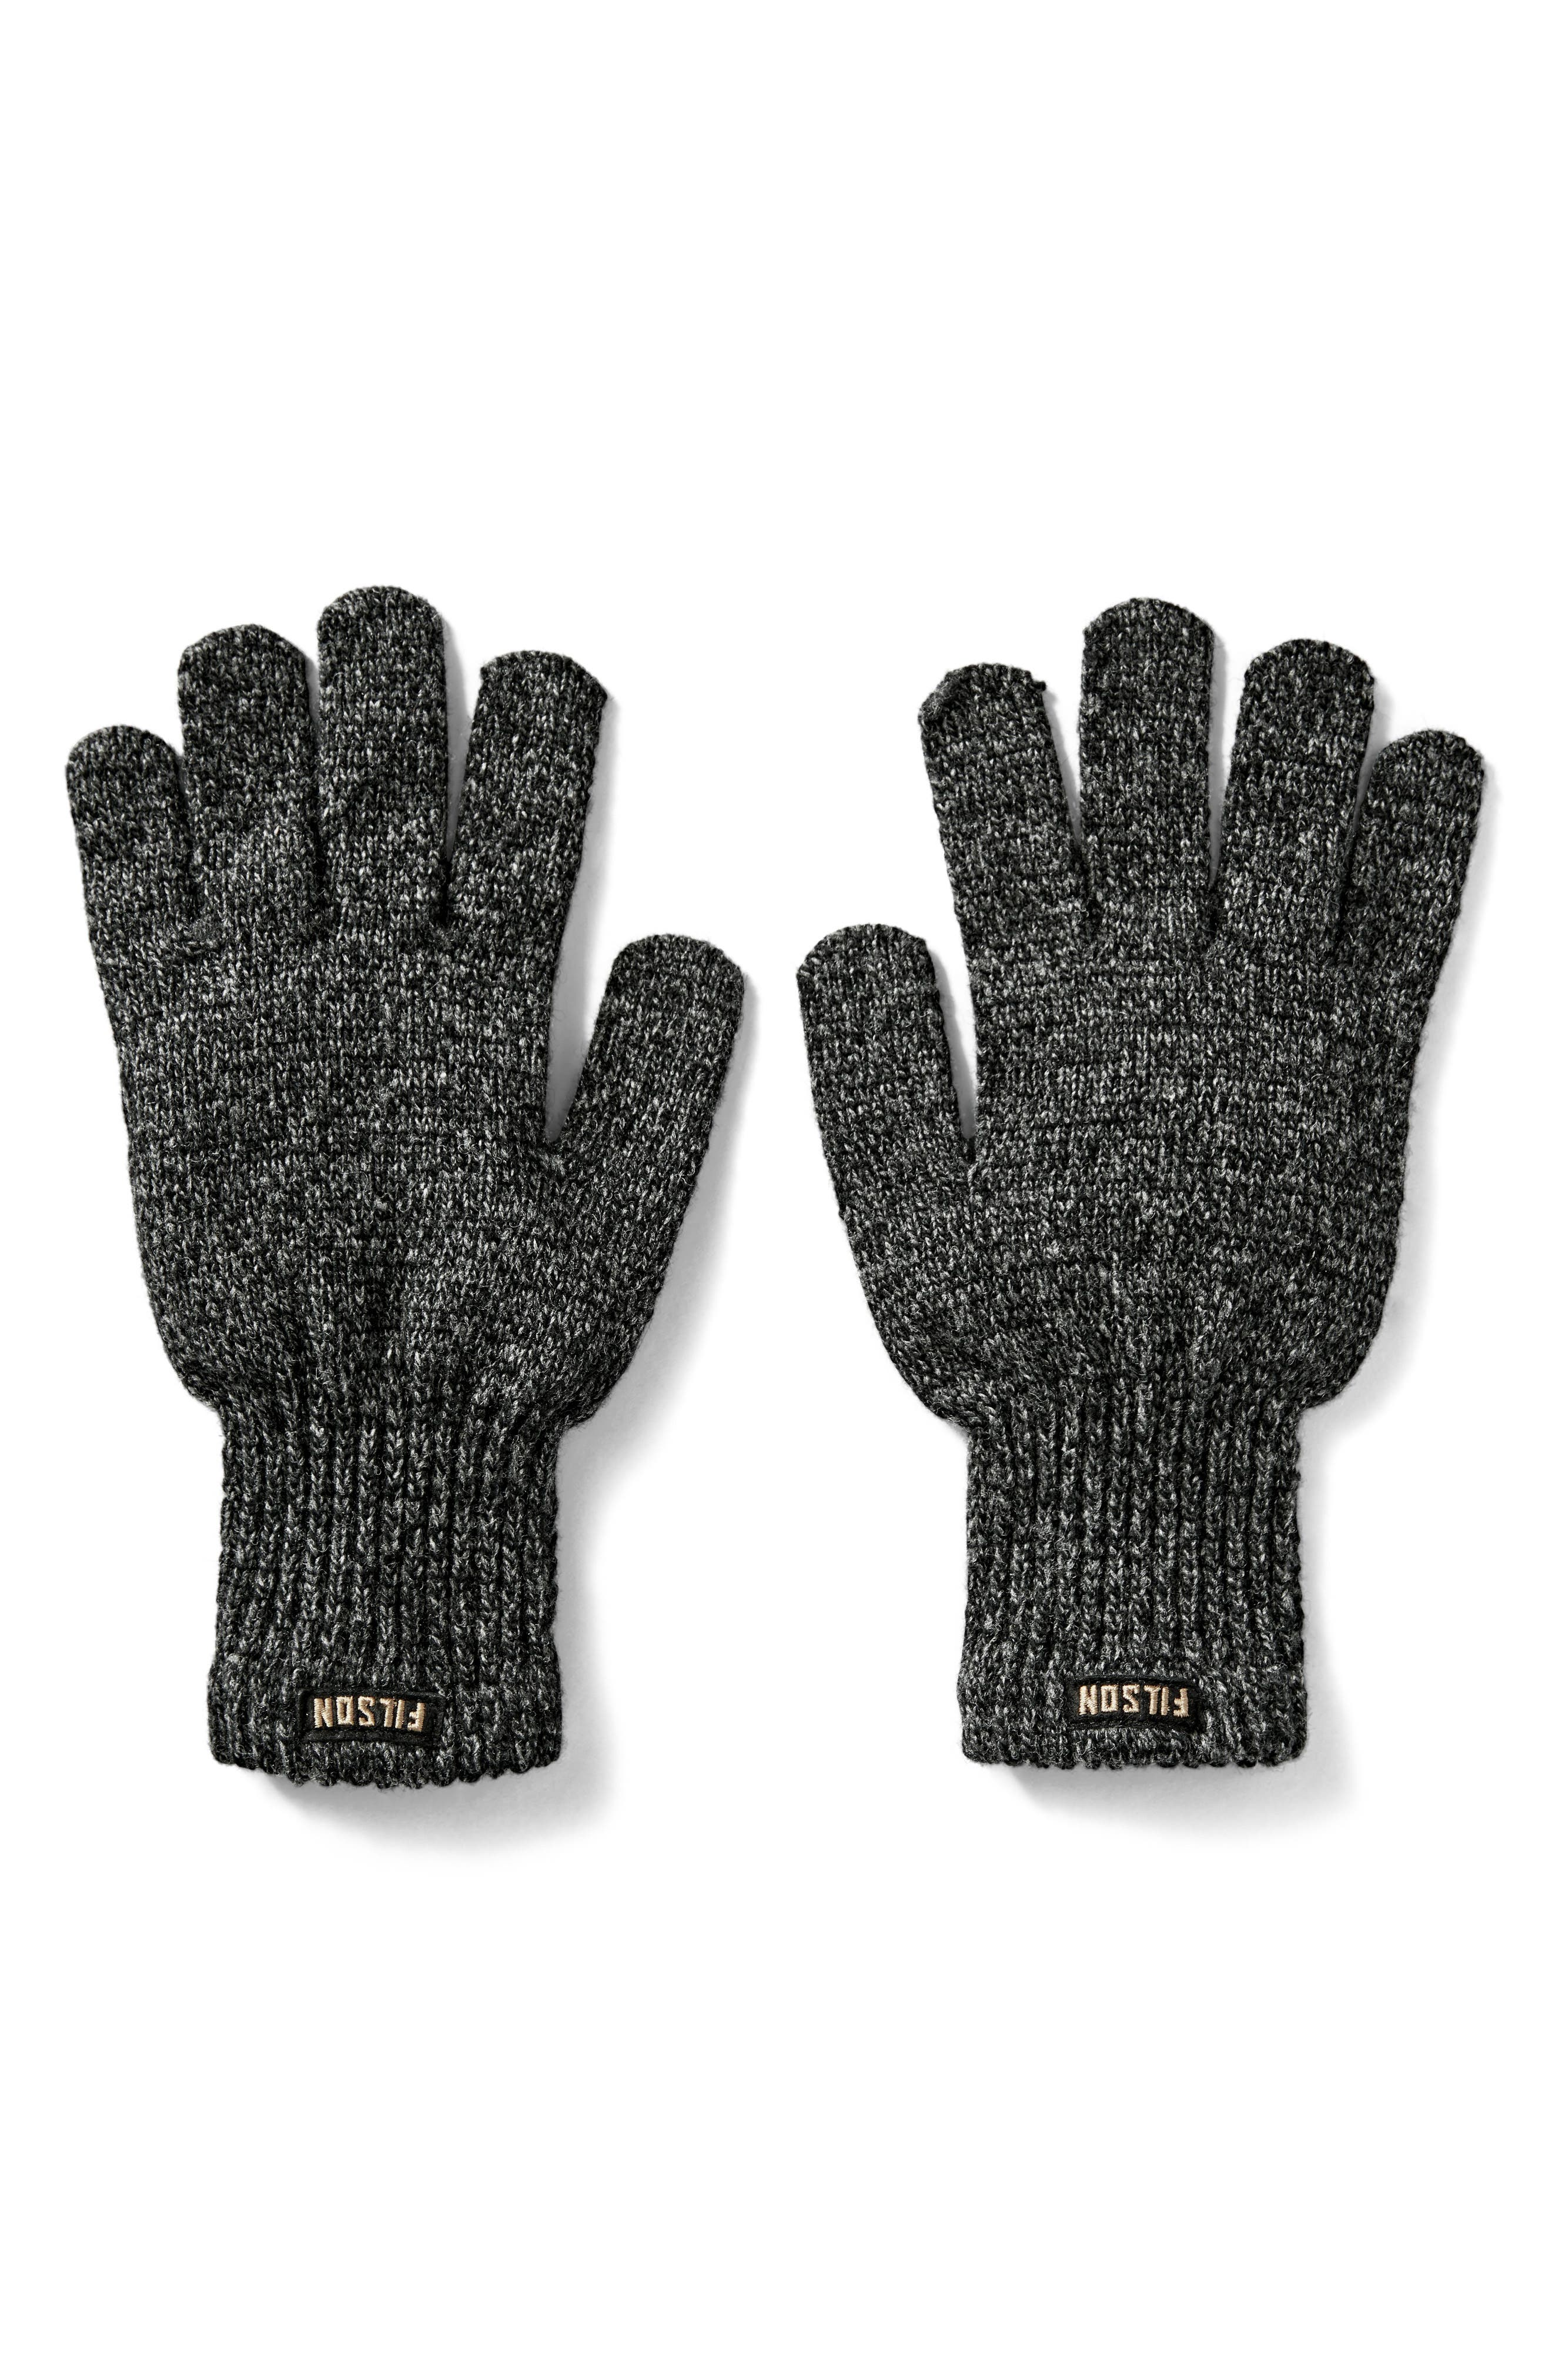 Wool Blend Knit Gloves,                             Main thumbnail 1, color,                             010